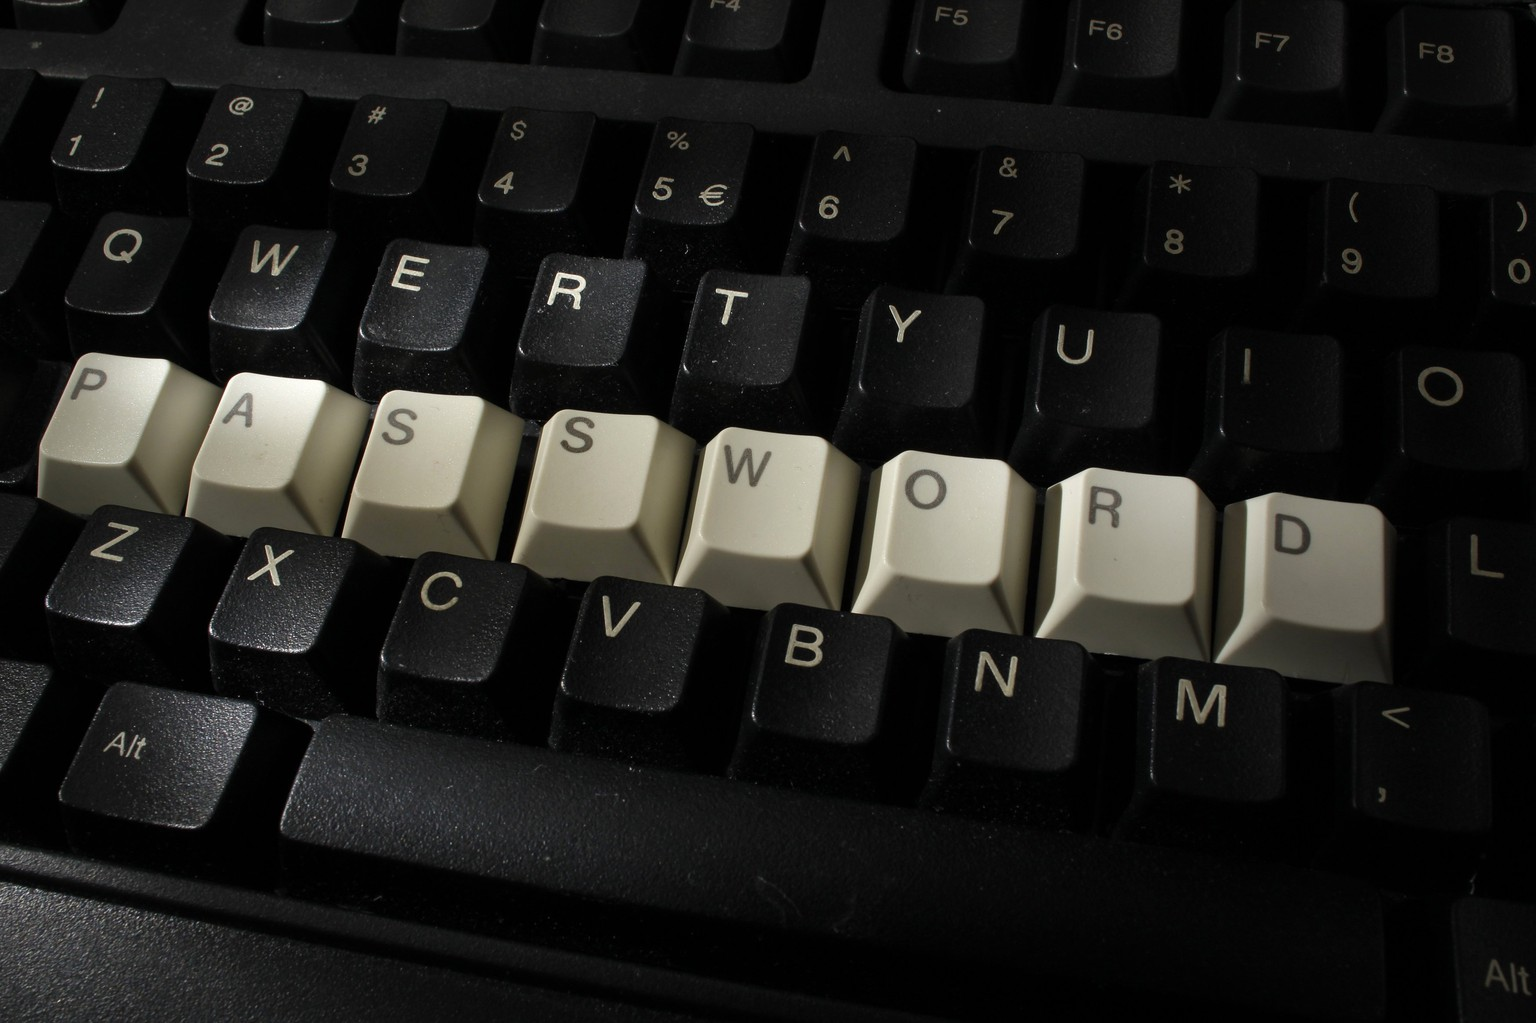 File illustration picture of computer keyboard with letters stacked forming the word 'password' taken in Warsaw, December 12, 2013.  Security experts warn there is little Internet users can do to protect themselves from the recently uncovered